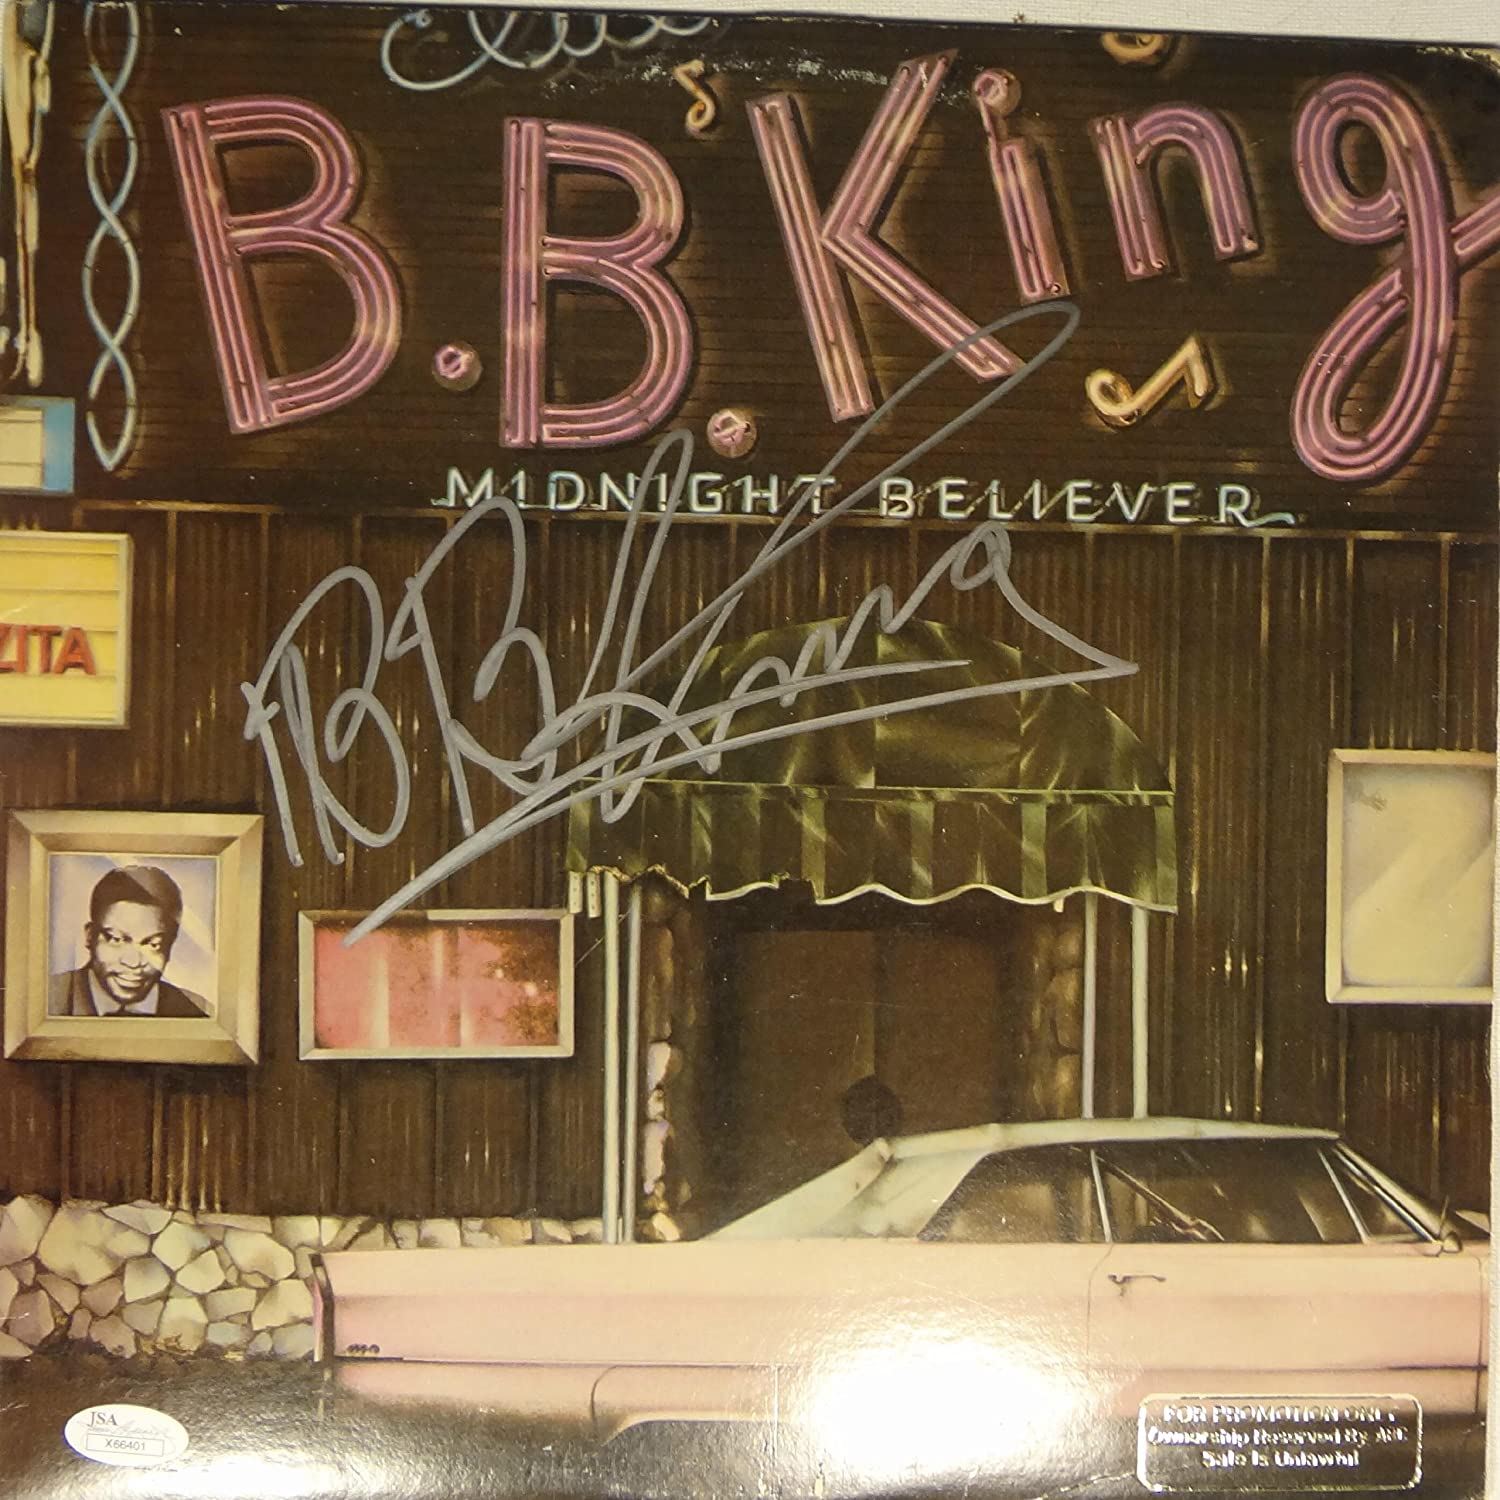 Signed B.B. King Autographed 1978 Midnight Believer Lp Album Jsa Loa # X66401 signed tfboys jackson karry roy autographed photobook official version freeshipping 3 versions 082017